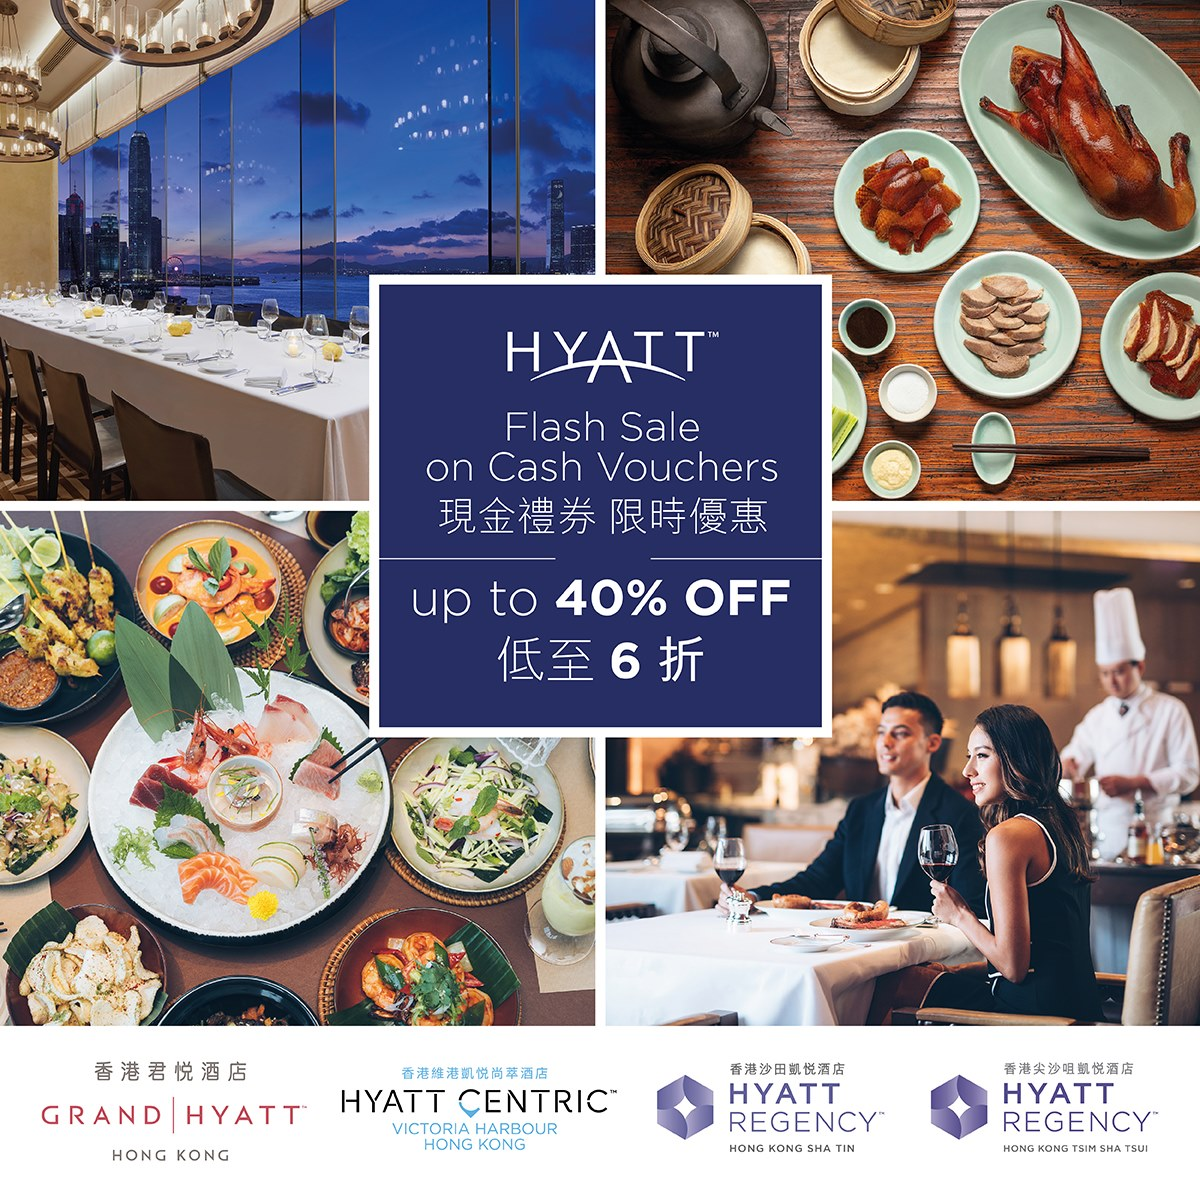 Hyatt Flash Sale on Cash Vouchers 凱悅現金禮券限時優惠